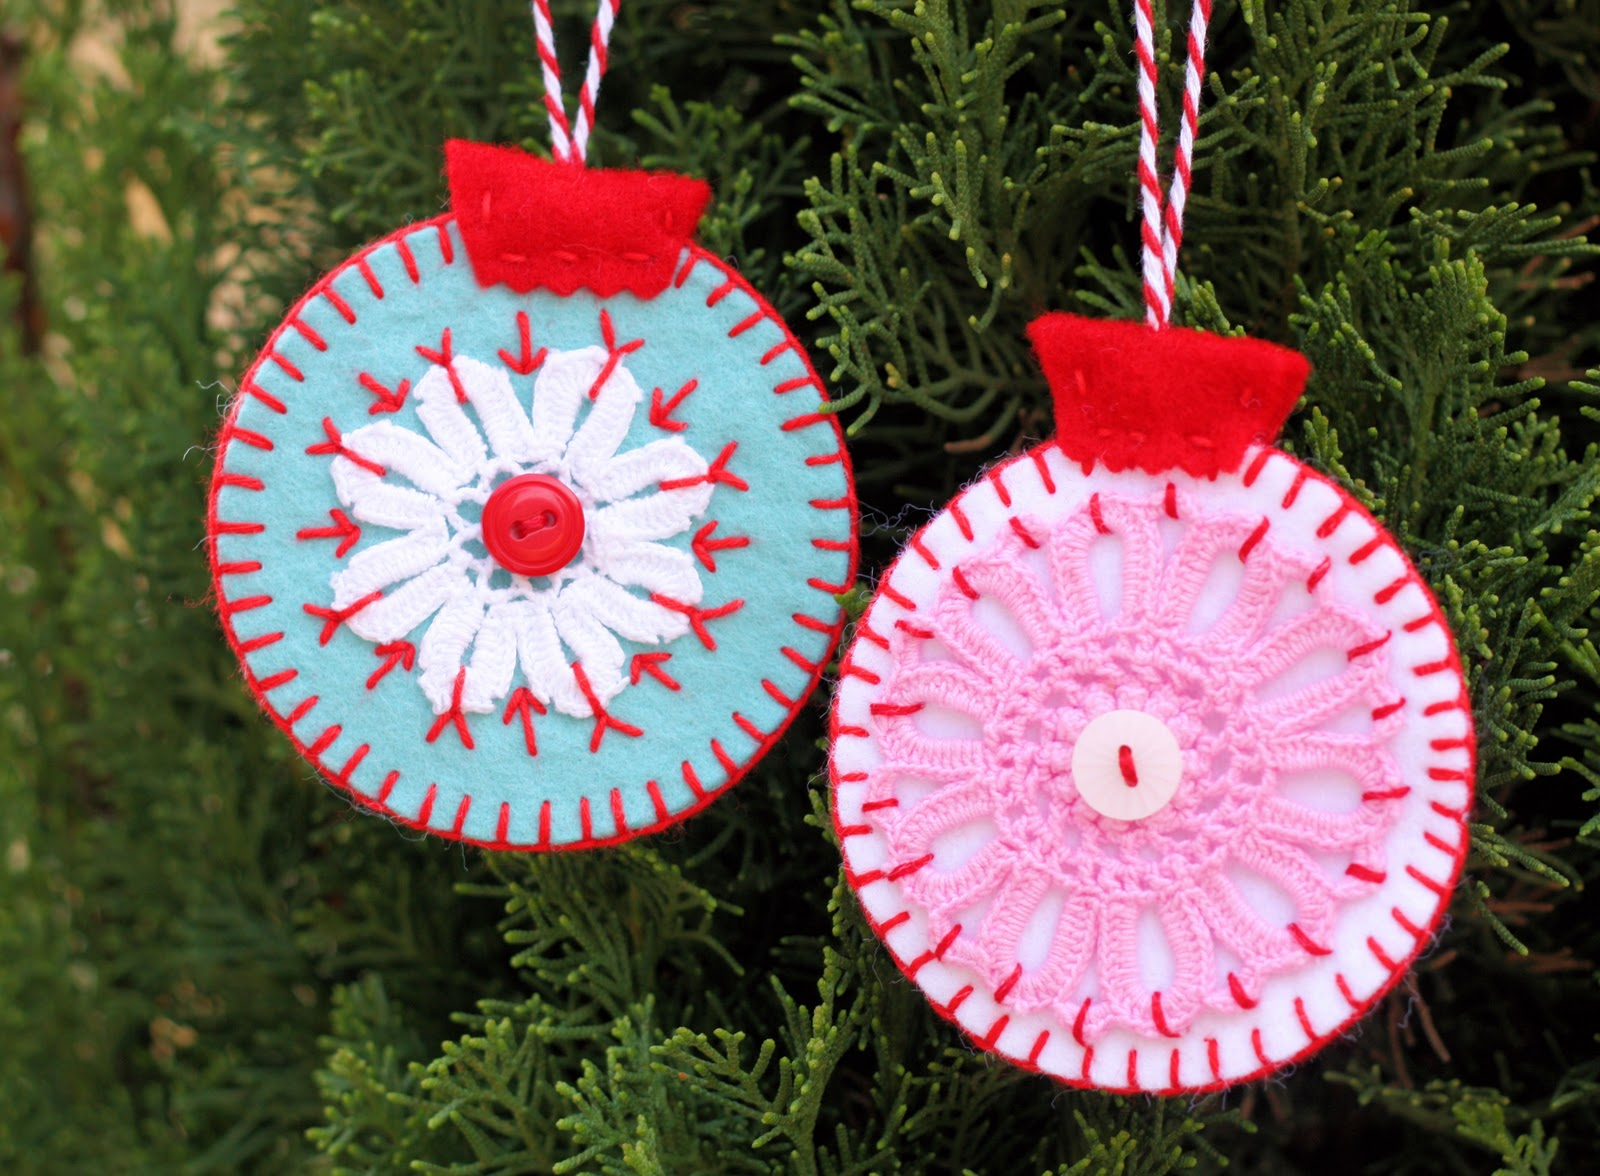 Christmas Tree Decorations To Make : Holiday ornaments to make homesfeed